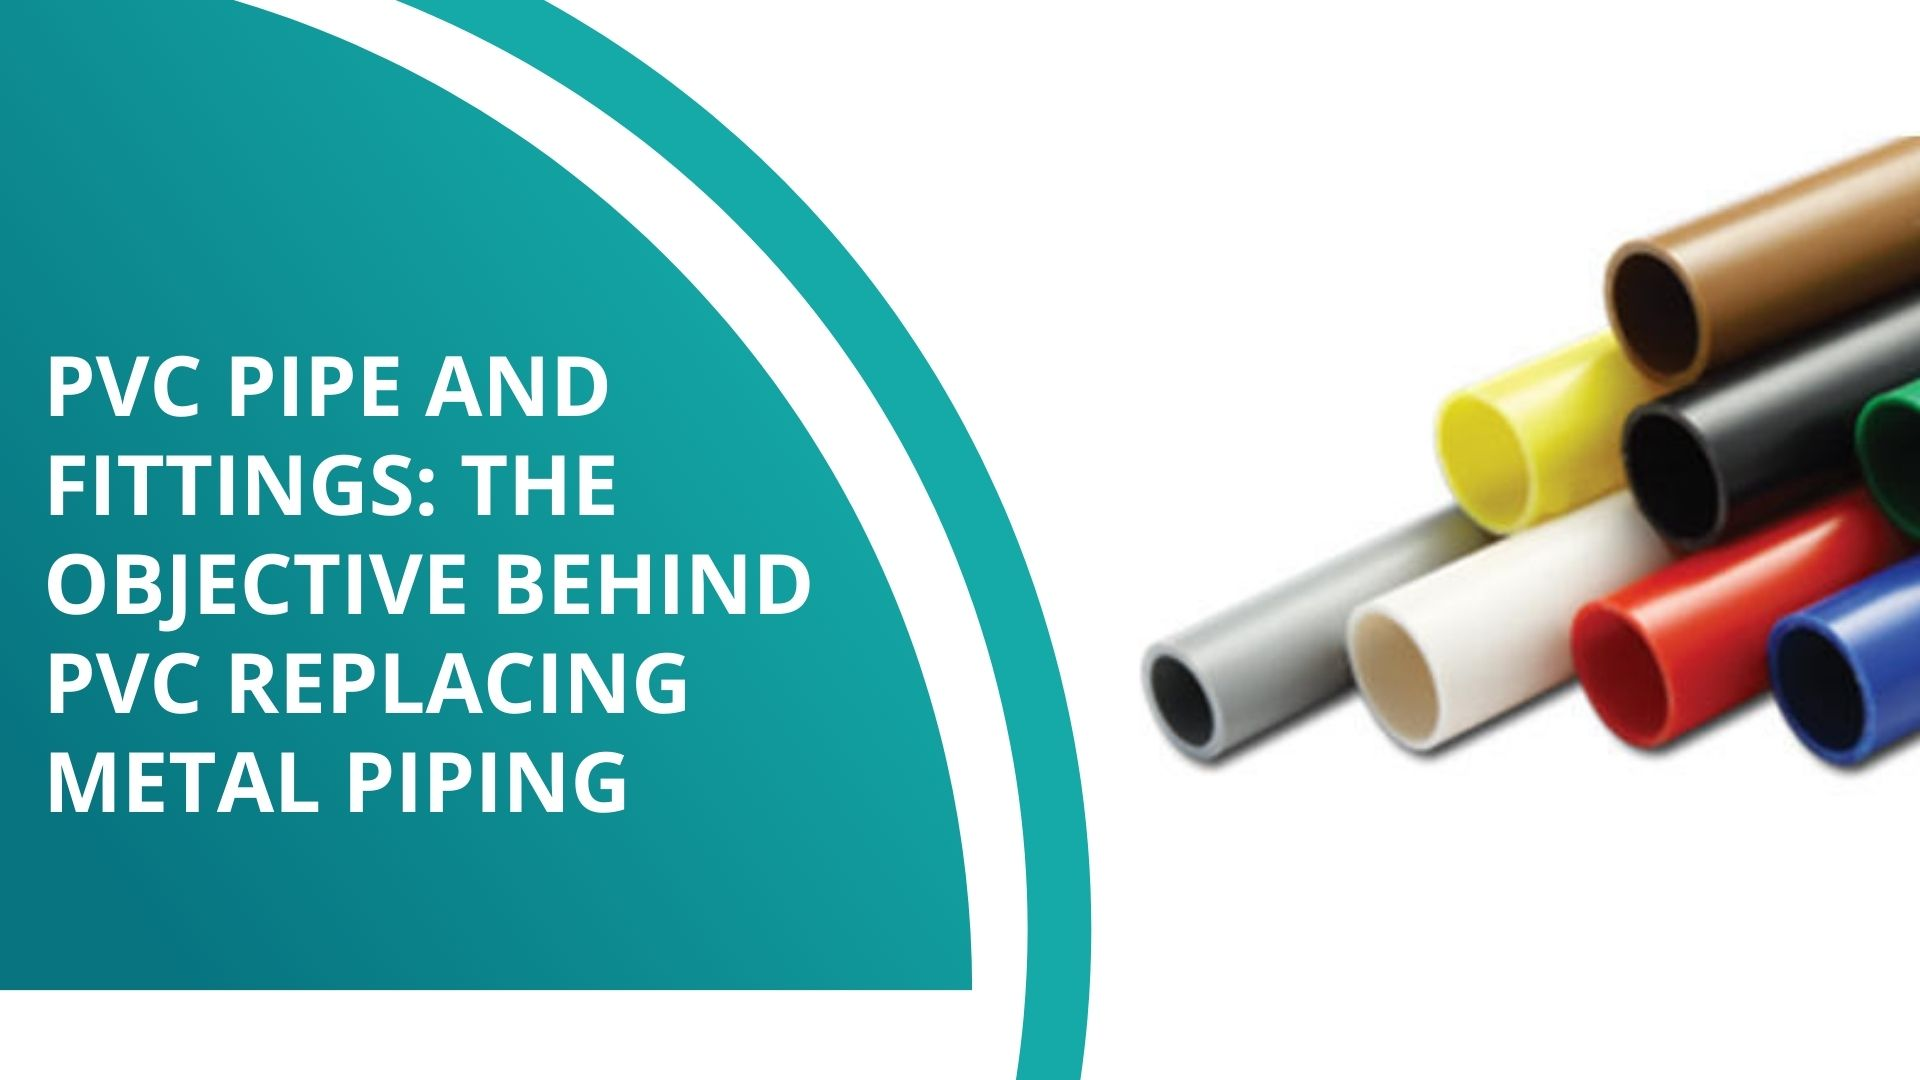 PVC Pipe and Fittings: The Objective Behind PVC Replacing Metal Piping - Shree Durga Electroplast Industries